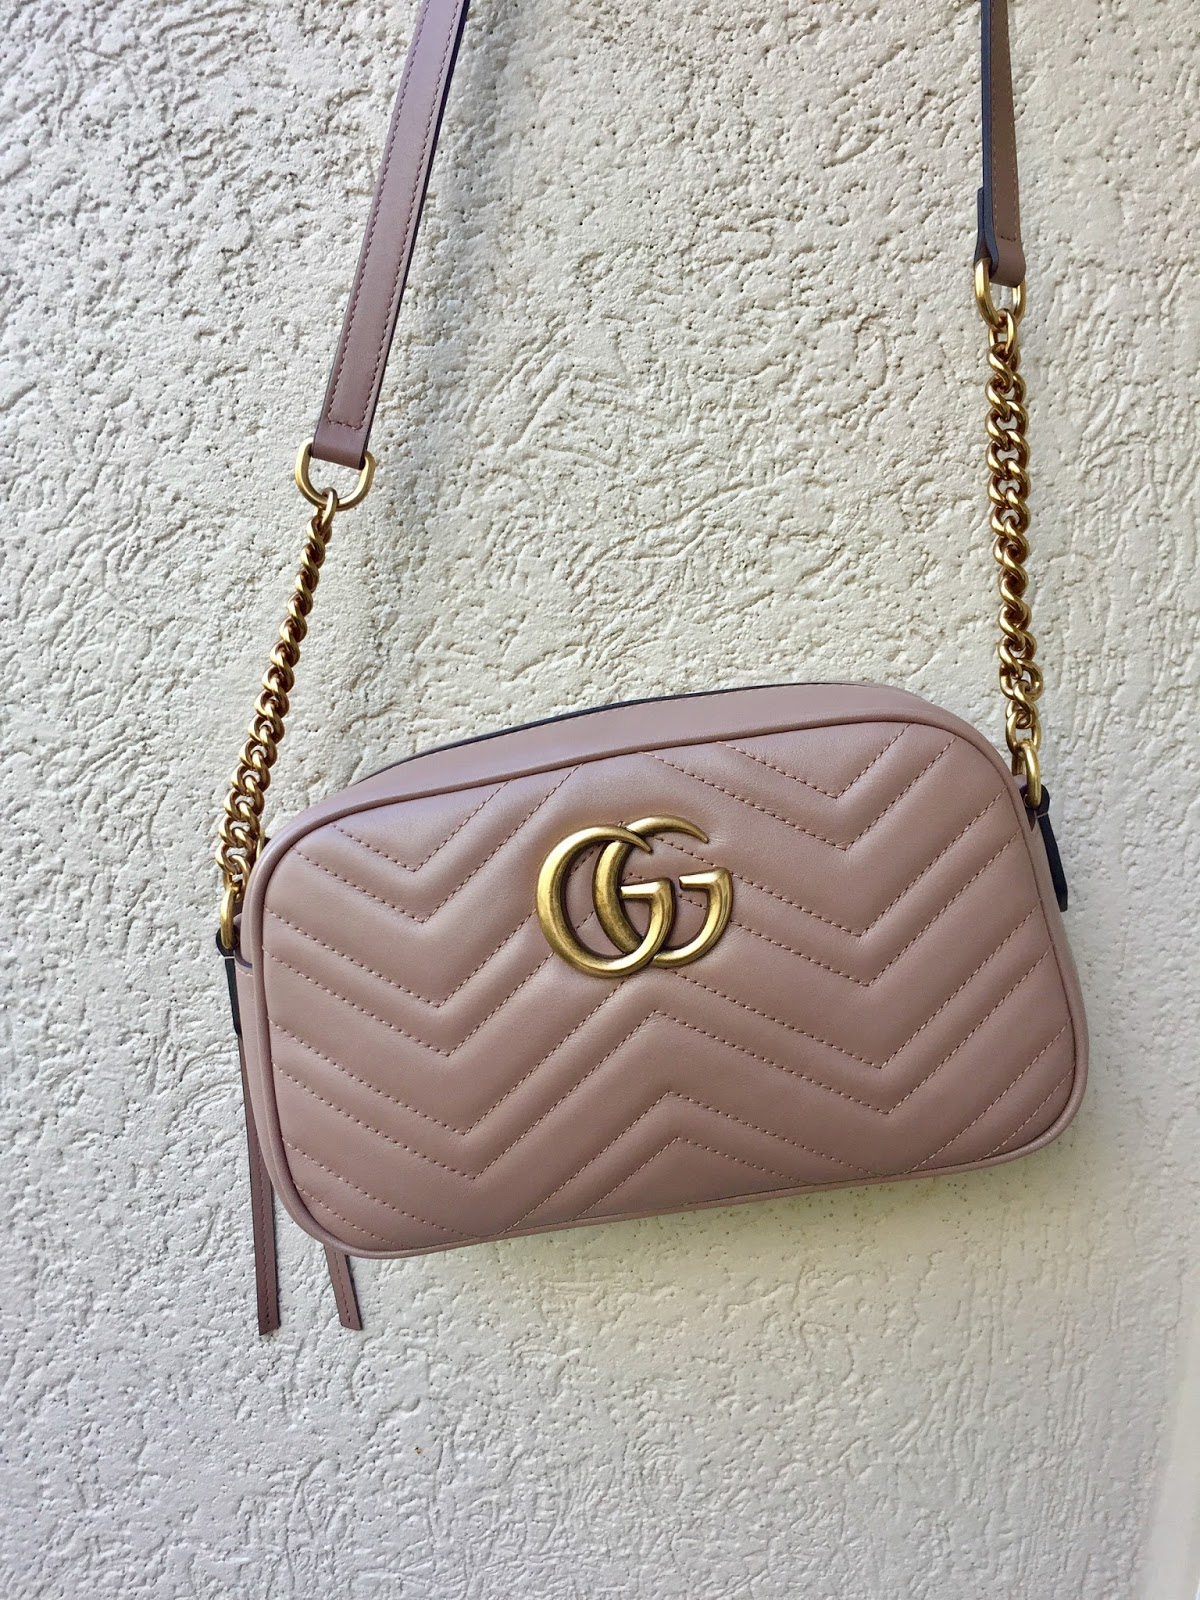 Petite Impact Review Gucci Gg Marmont Matelasse Shoulder Bag Size Small Nude